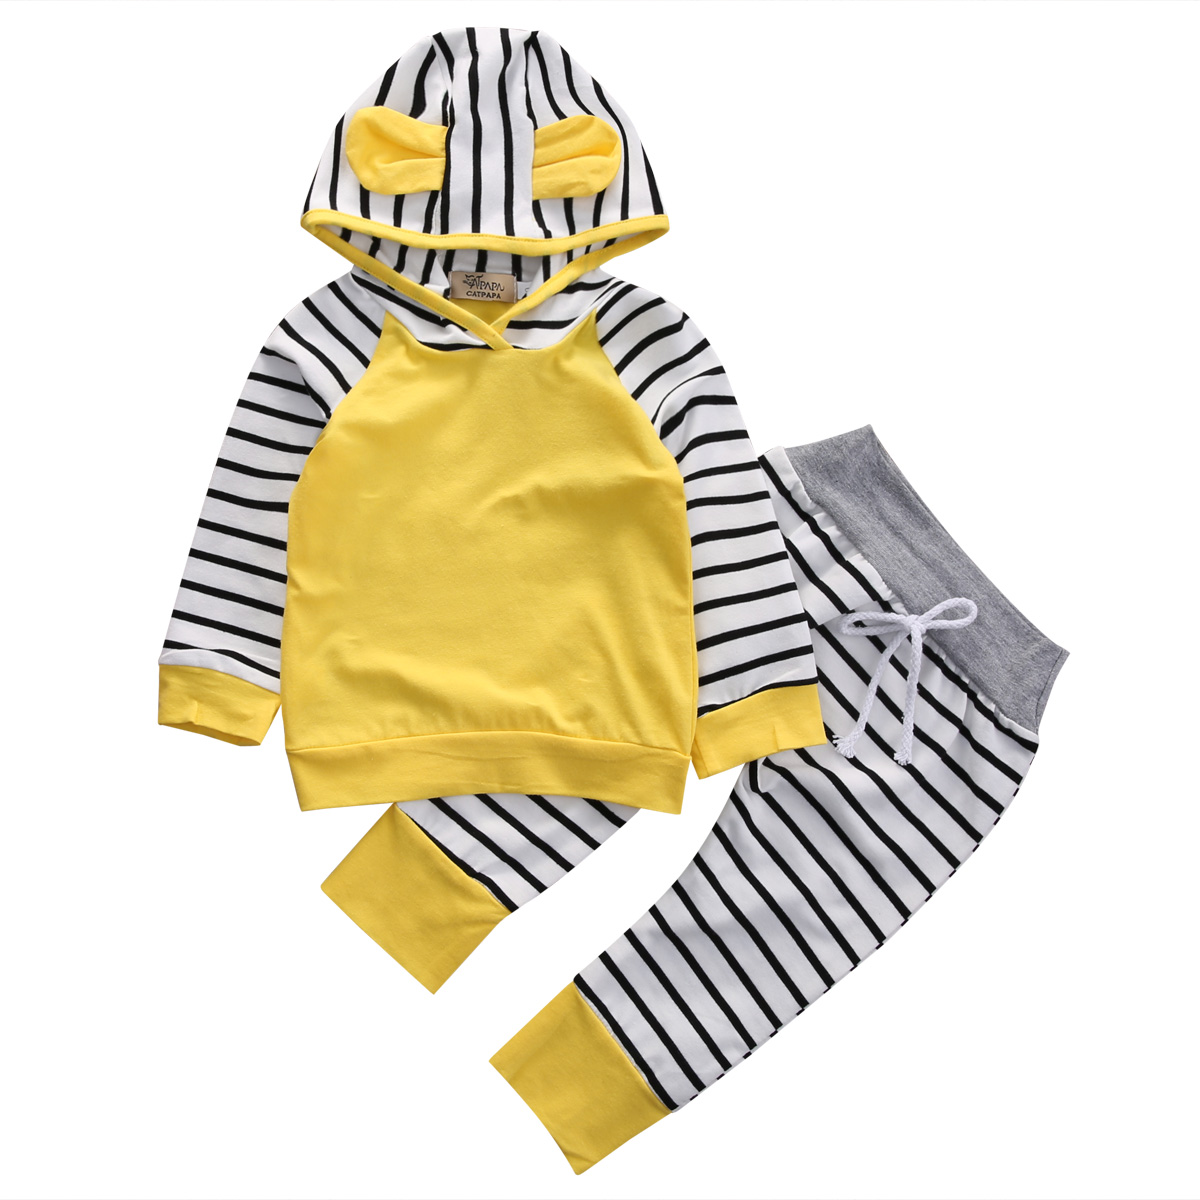 2Pcs/Set New Adorable Autumn Spring Newborn Baby Girls boys Infant Warm Romper Jumpsuit playsuit Hooded Clothes Outfit0-3 years  free shipping new 2017 spring autumn baby clothing infant set gift baby jumpsuits newborn romper 4pcs set 2pcs romper hat bib